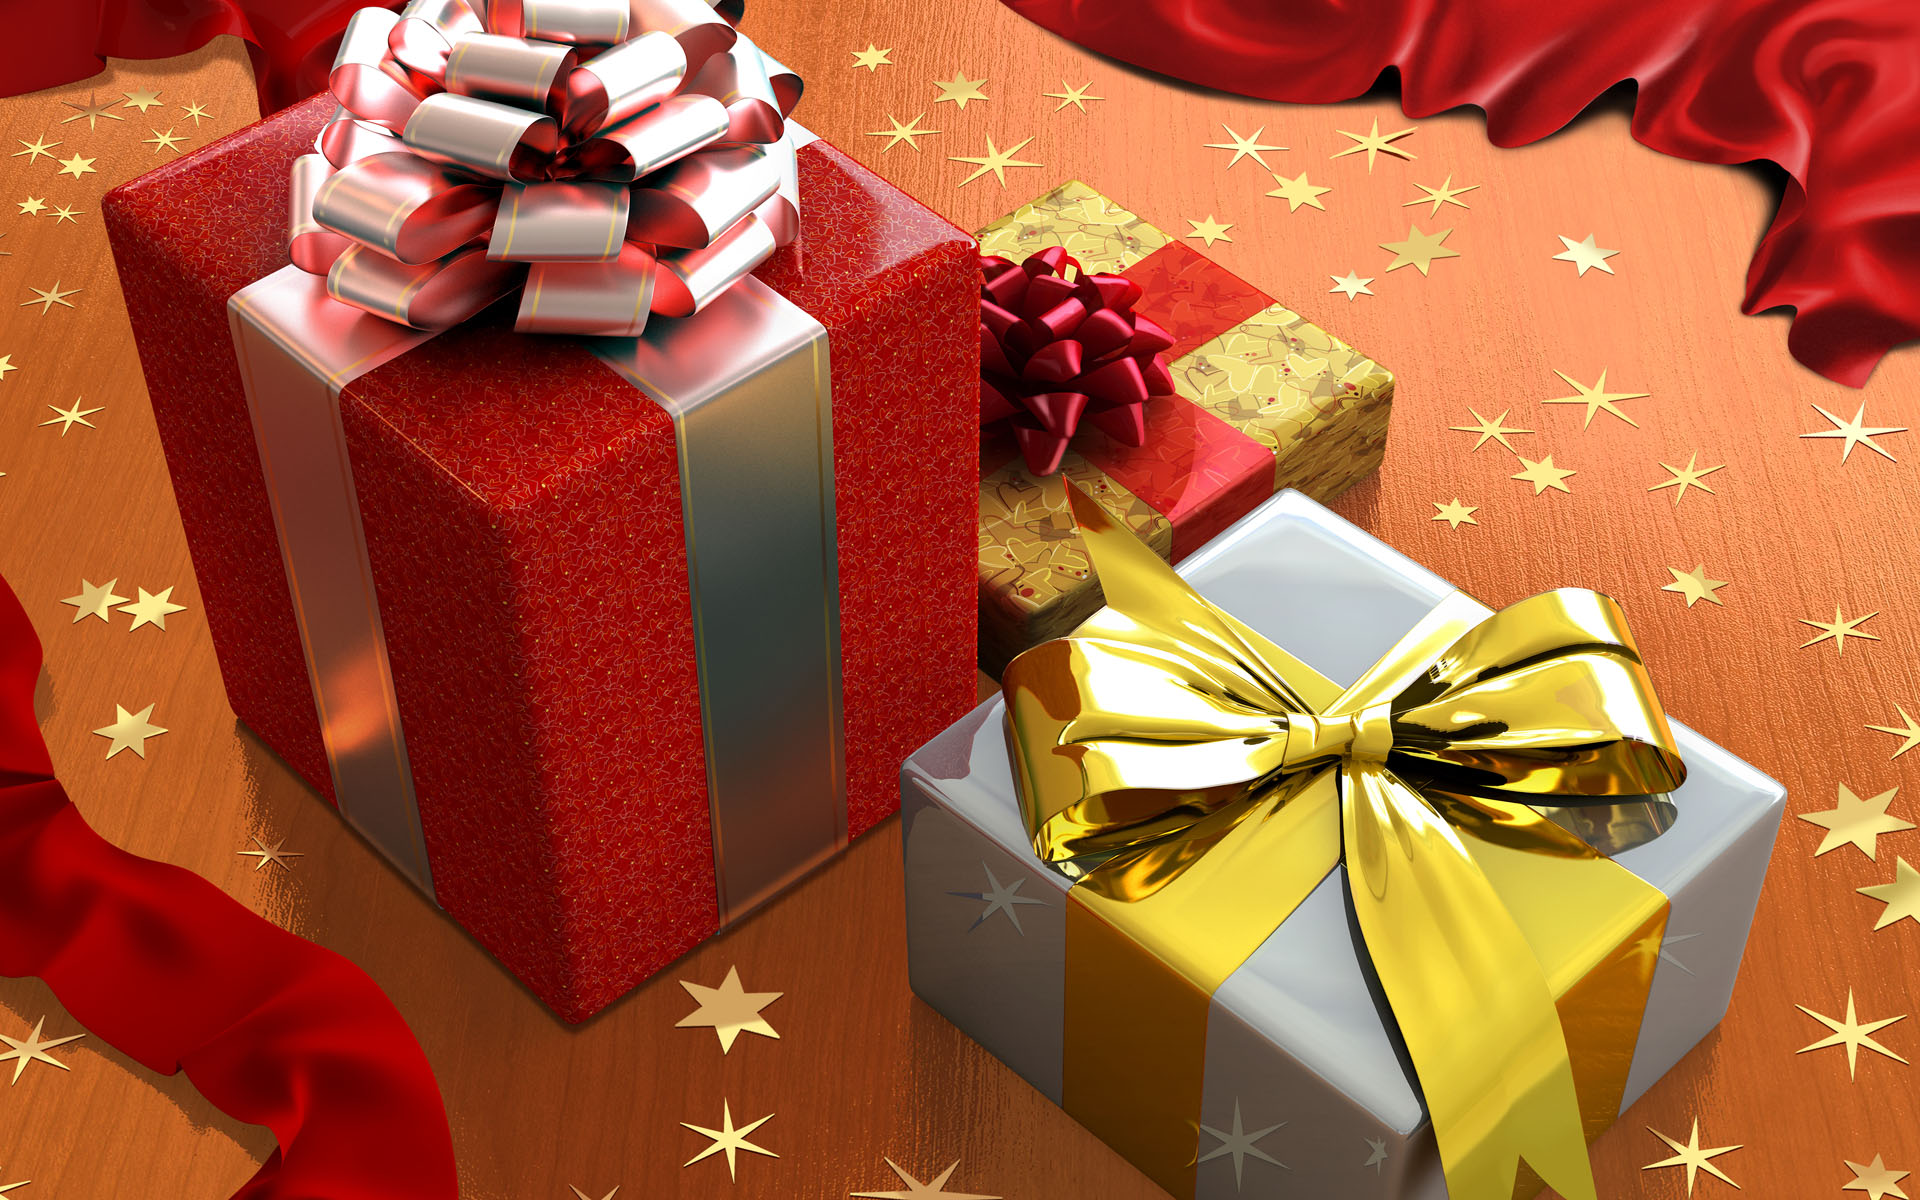 Christmas Gifts Images Wallpaper High Definition High Quality Widescreen